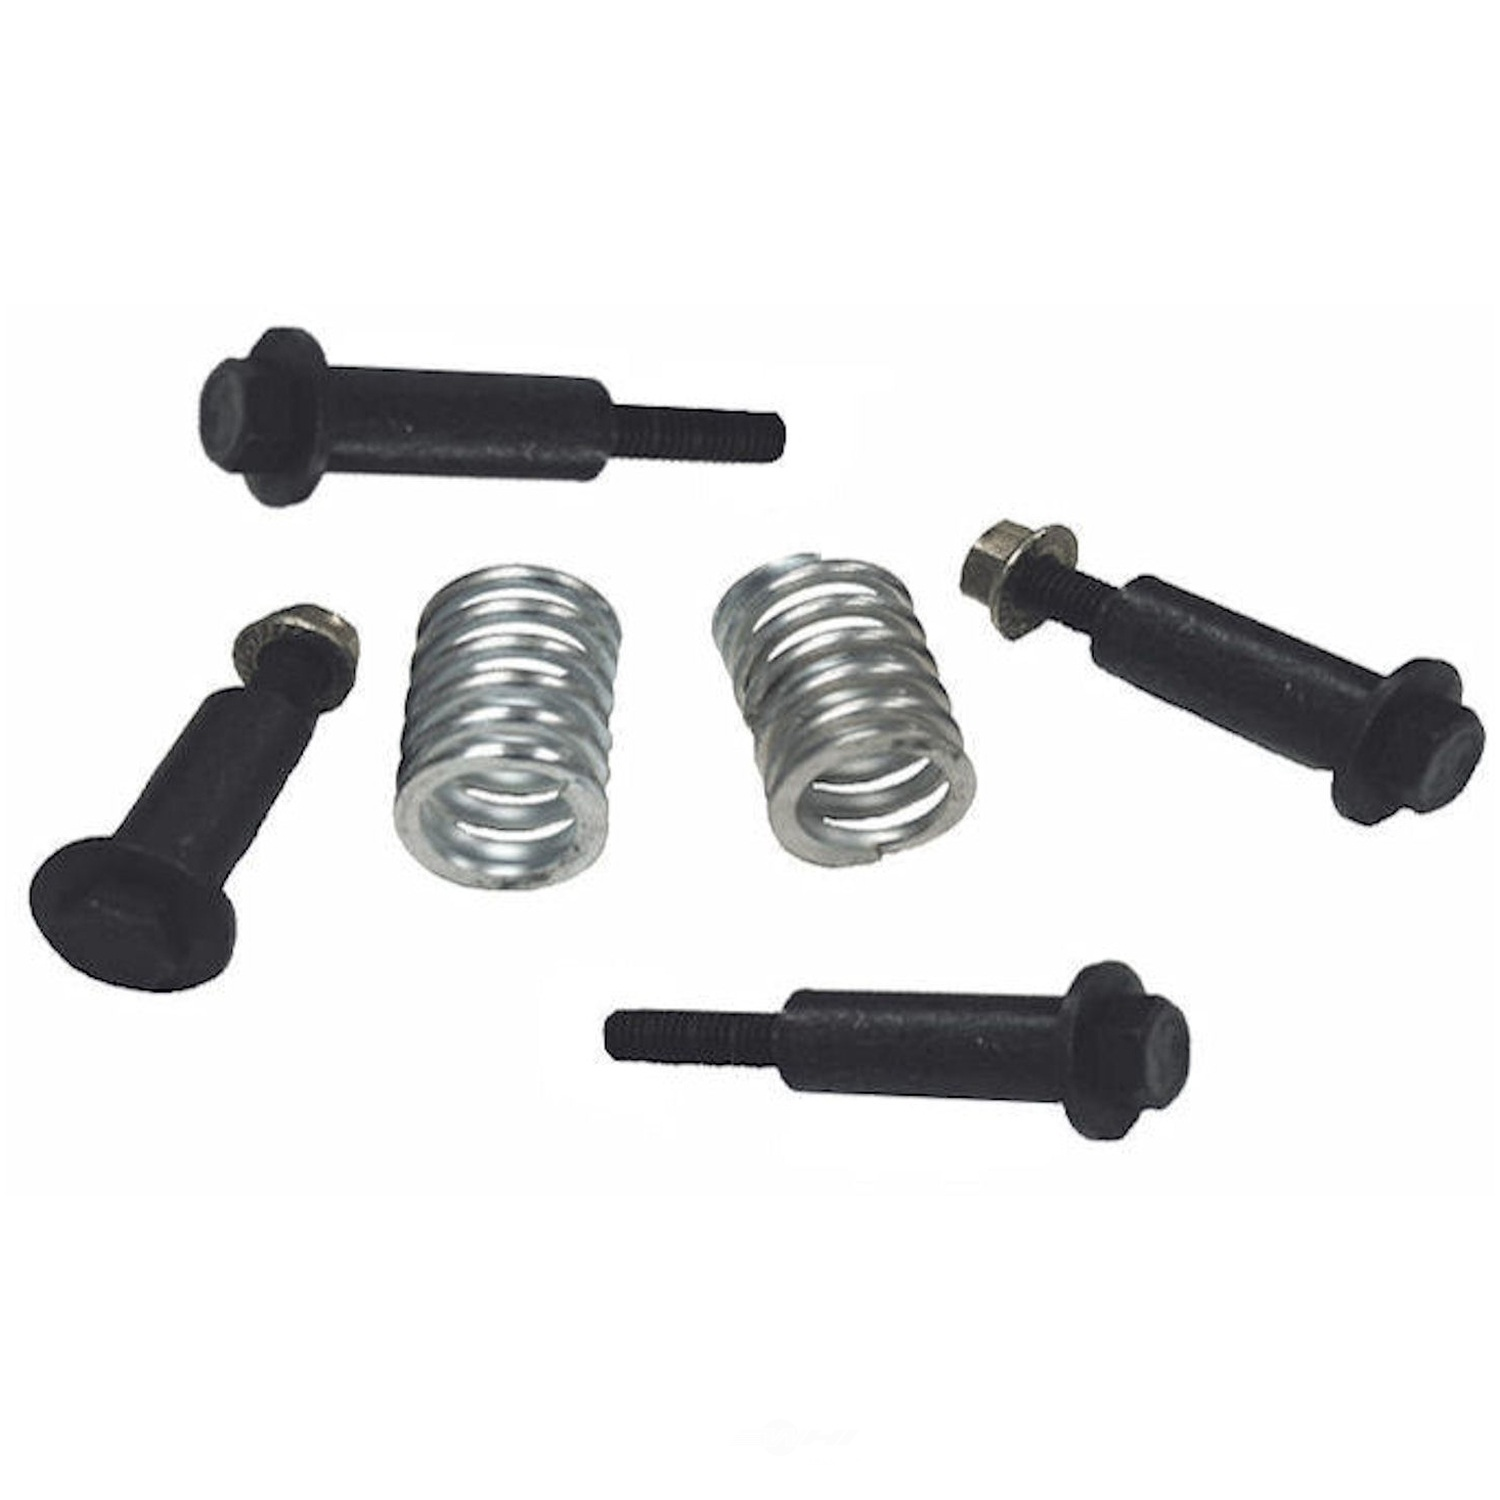 BOSAL EXHAUST - Bolts/Nuts/Springs Kit - BSL 254-9990